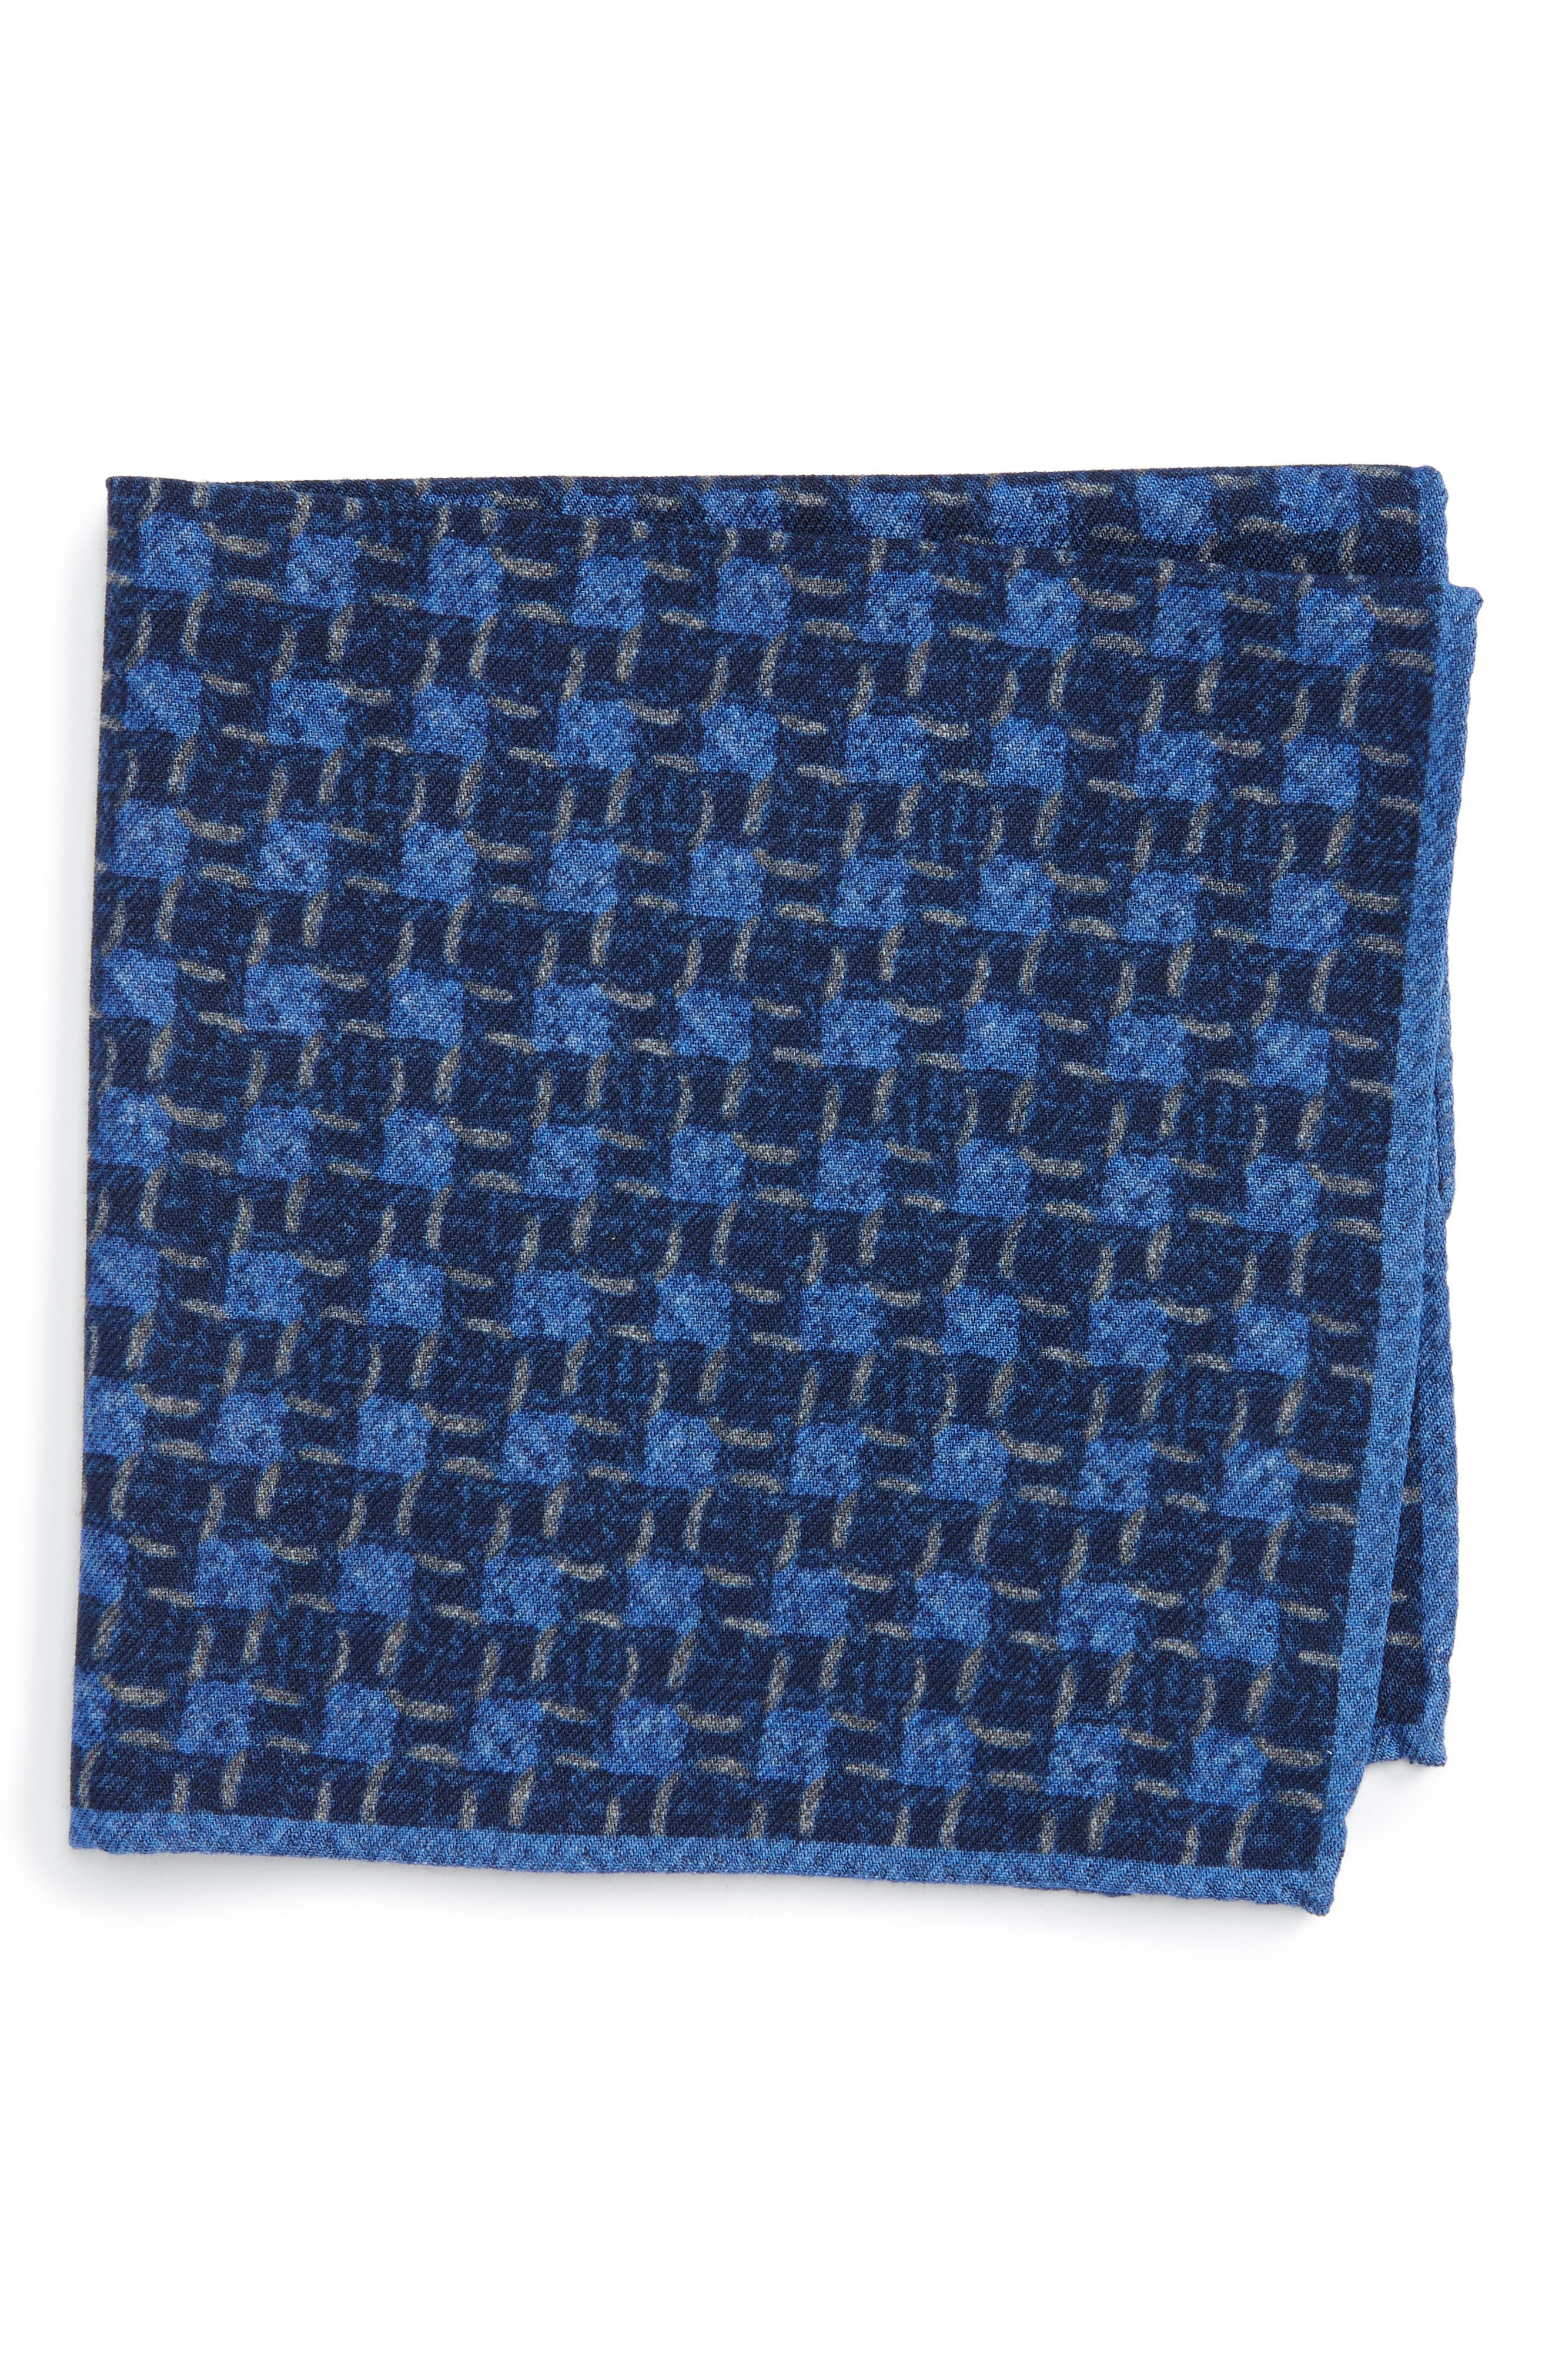 Grid Wool Pocket Square,                             Main thumbnail 1, color,                             Navy